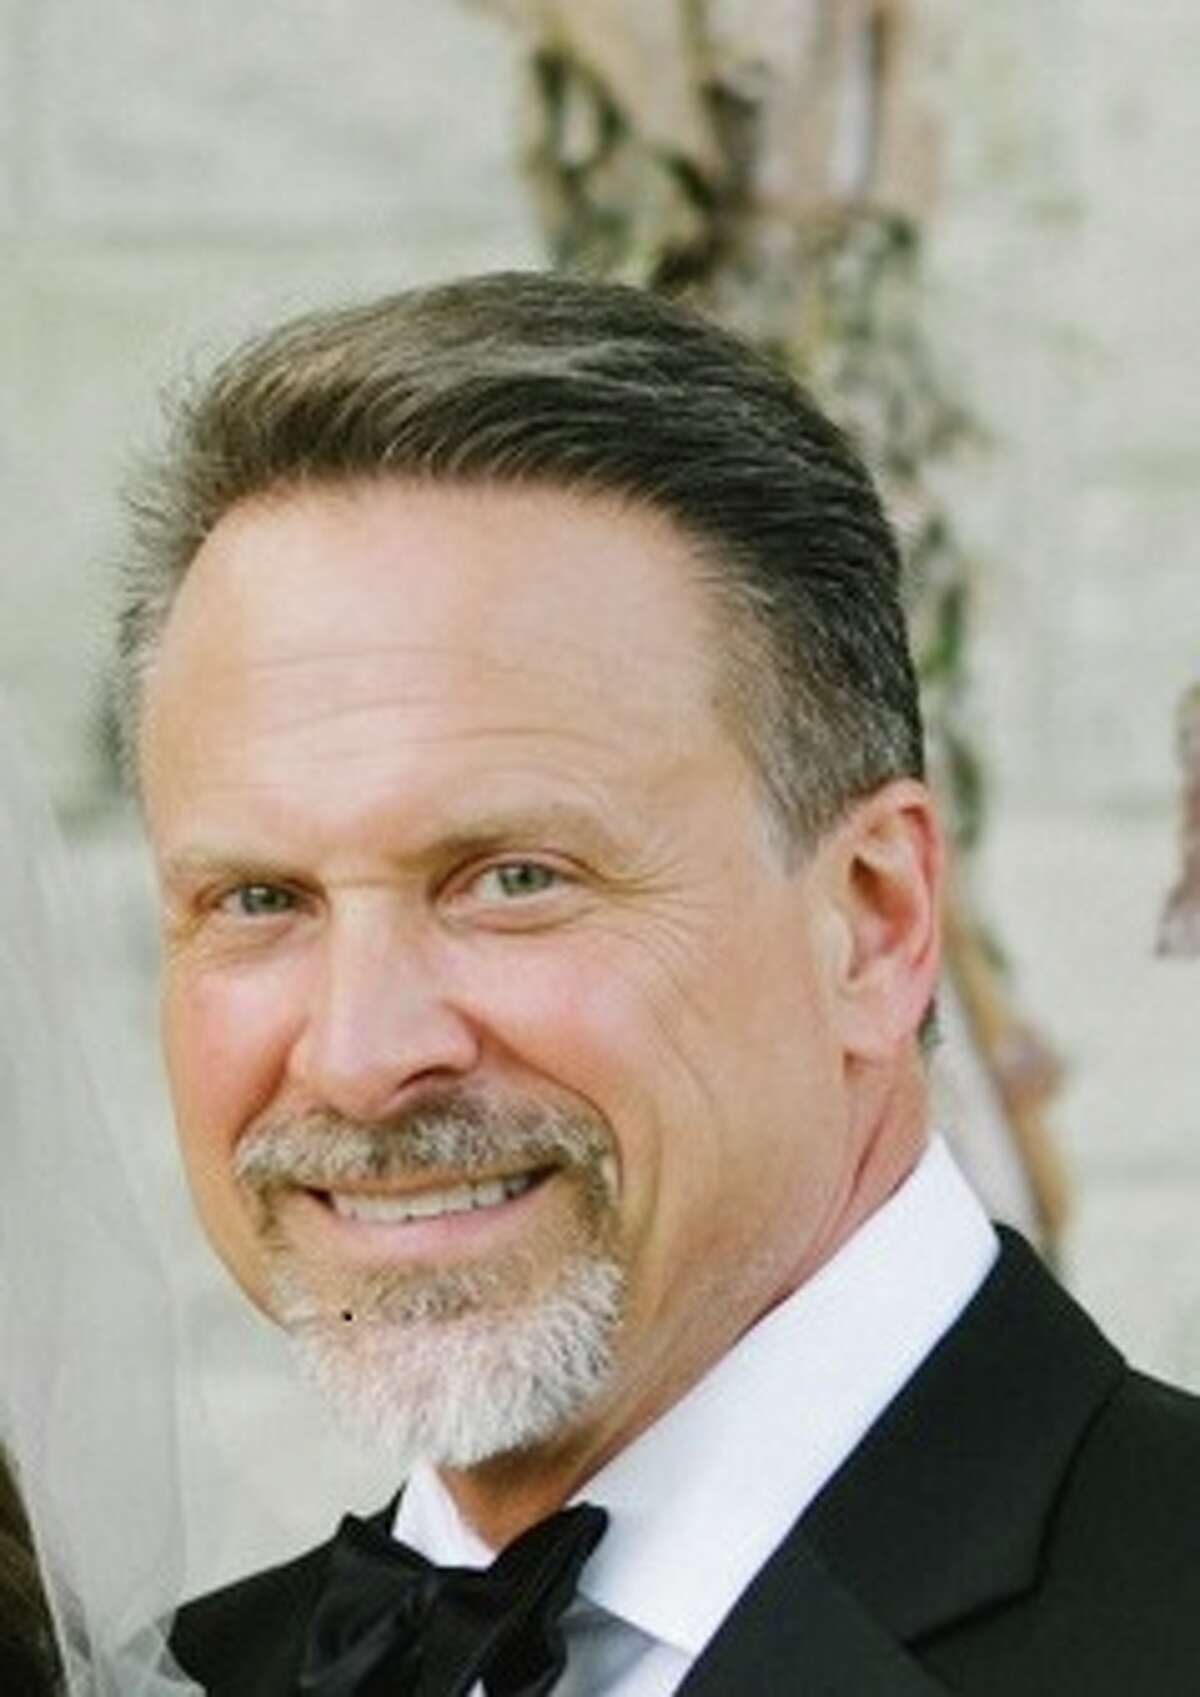 """Ogden """"Jeff"""" Myklebust, II has been named president and CEO of Loadmaster Derrick & Equipment."""